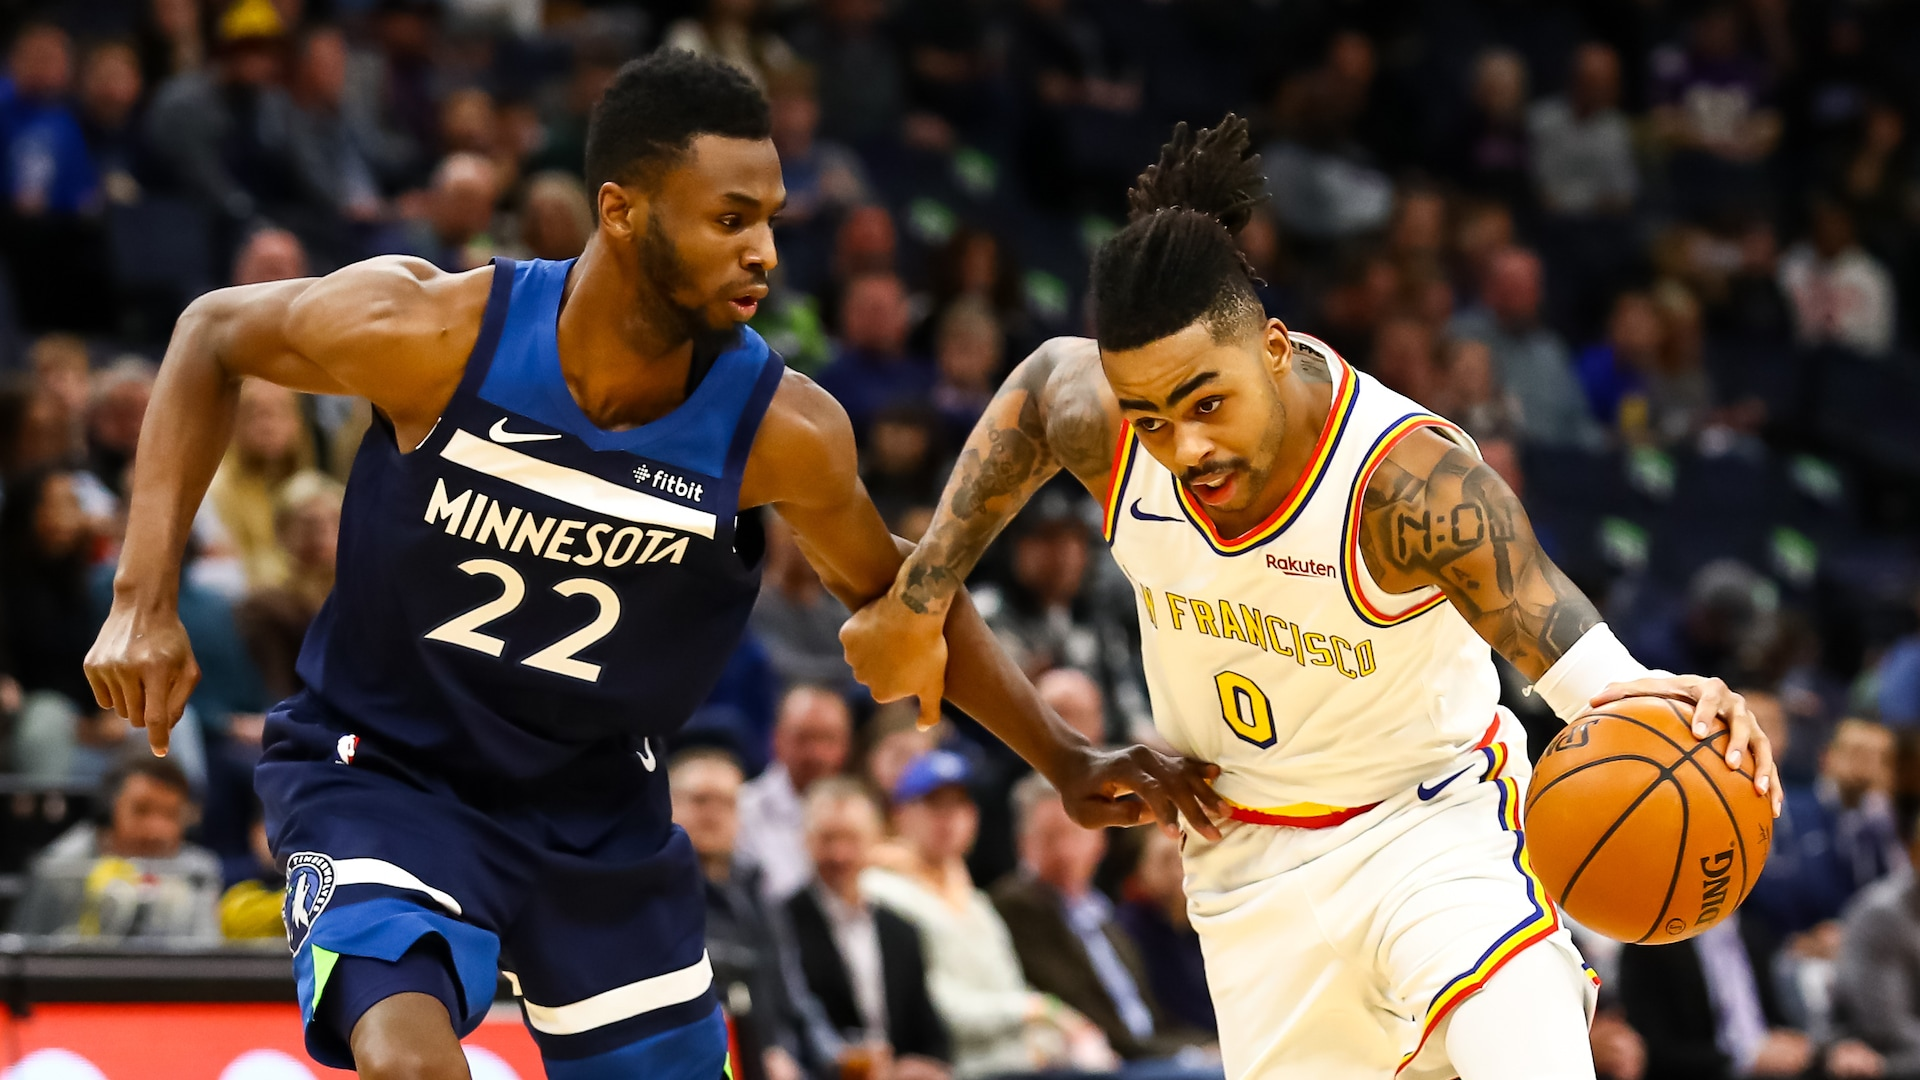 Warriors trade D'Angelo Russell to Timberwolves for Andrew Wiggins, picks